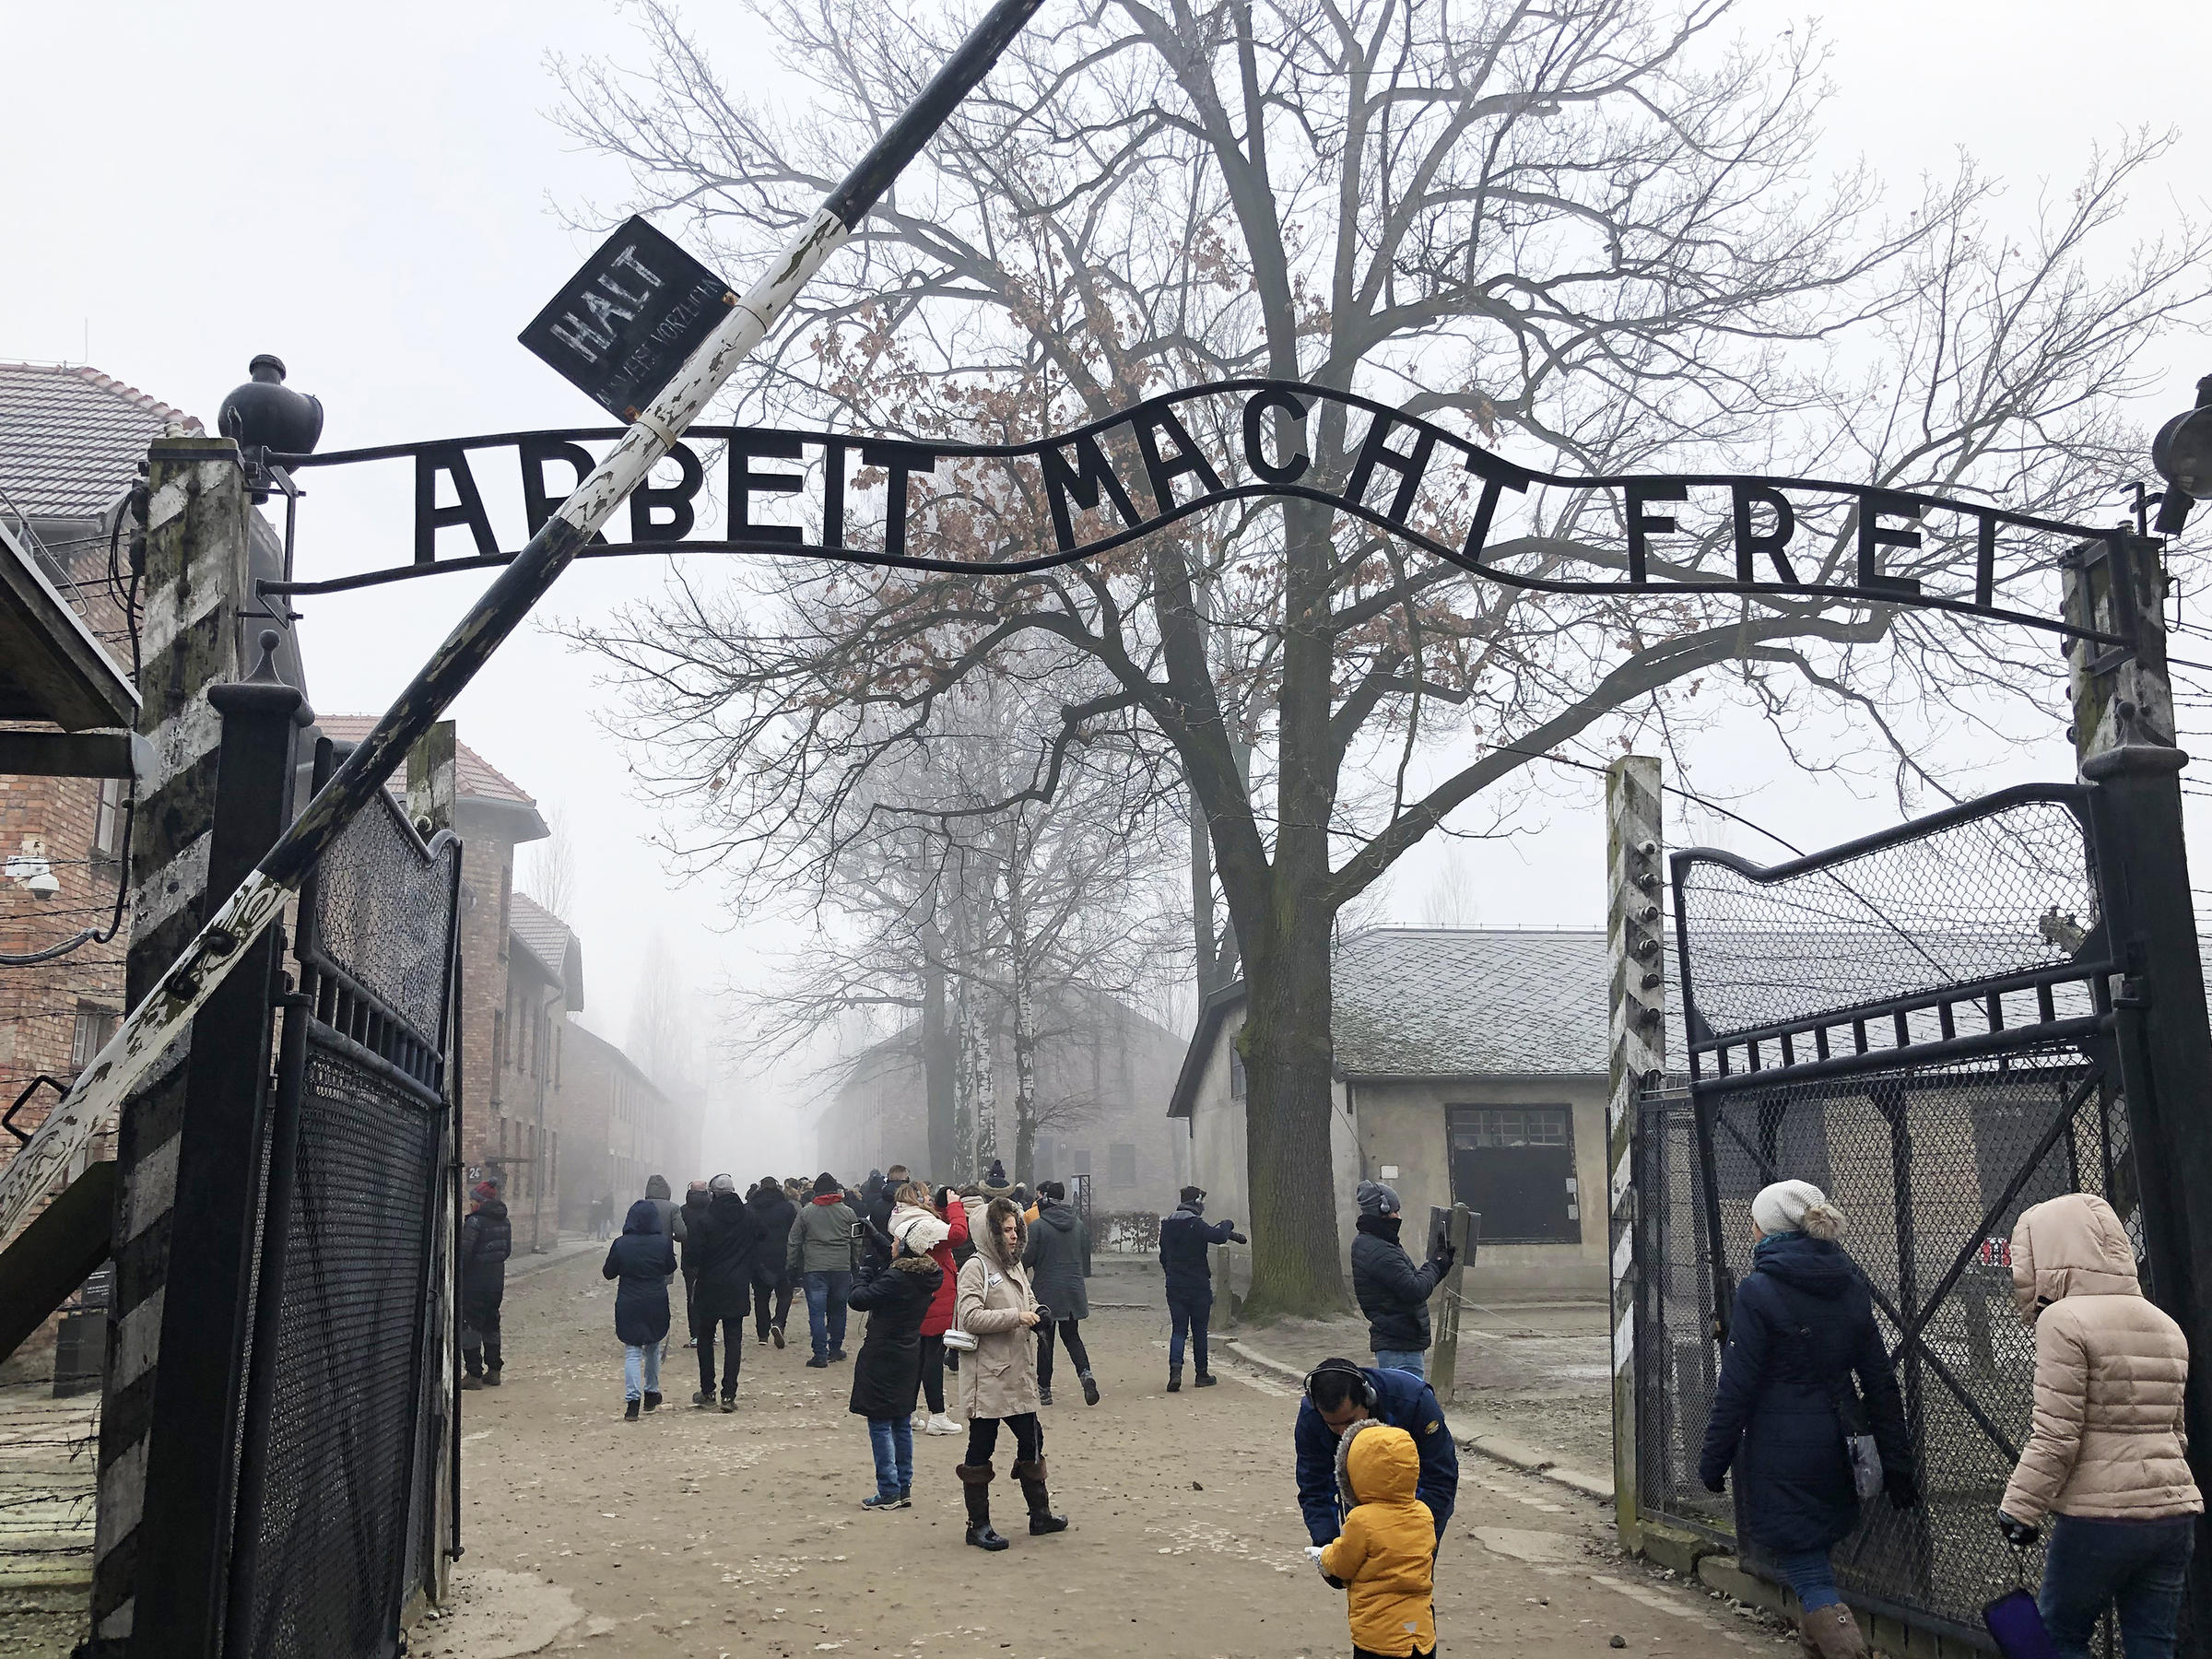 75 Years After Auschwitz Liberation, Survivors Urge World To Remember